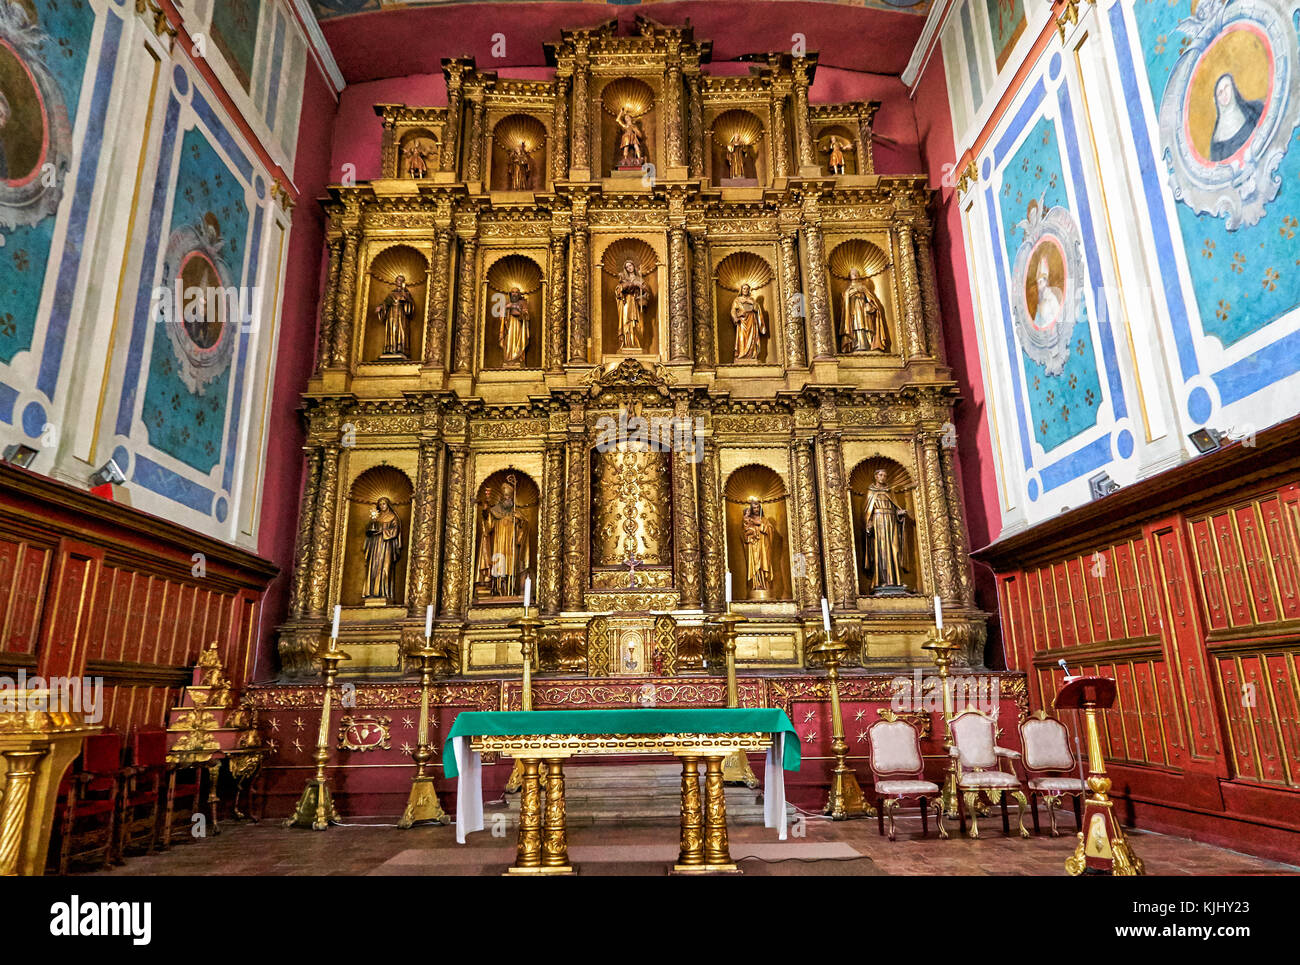 interior shot of Iglesia de la Candelaria or Church of Our Lady of Candelaria, Bogota, Colombia, South America - Stock Image